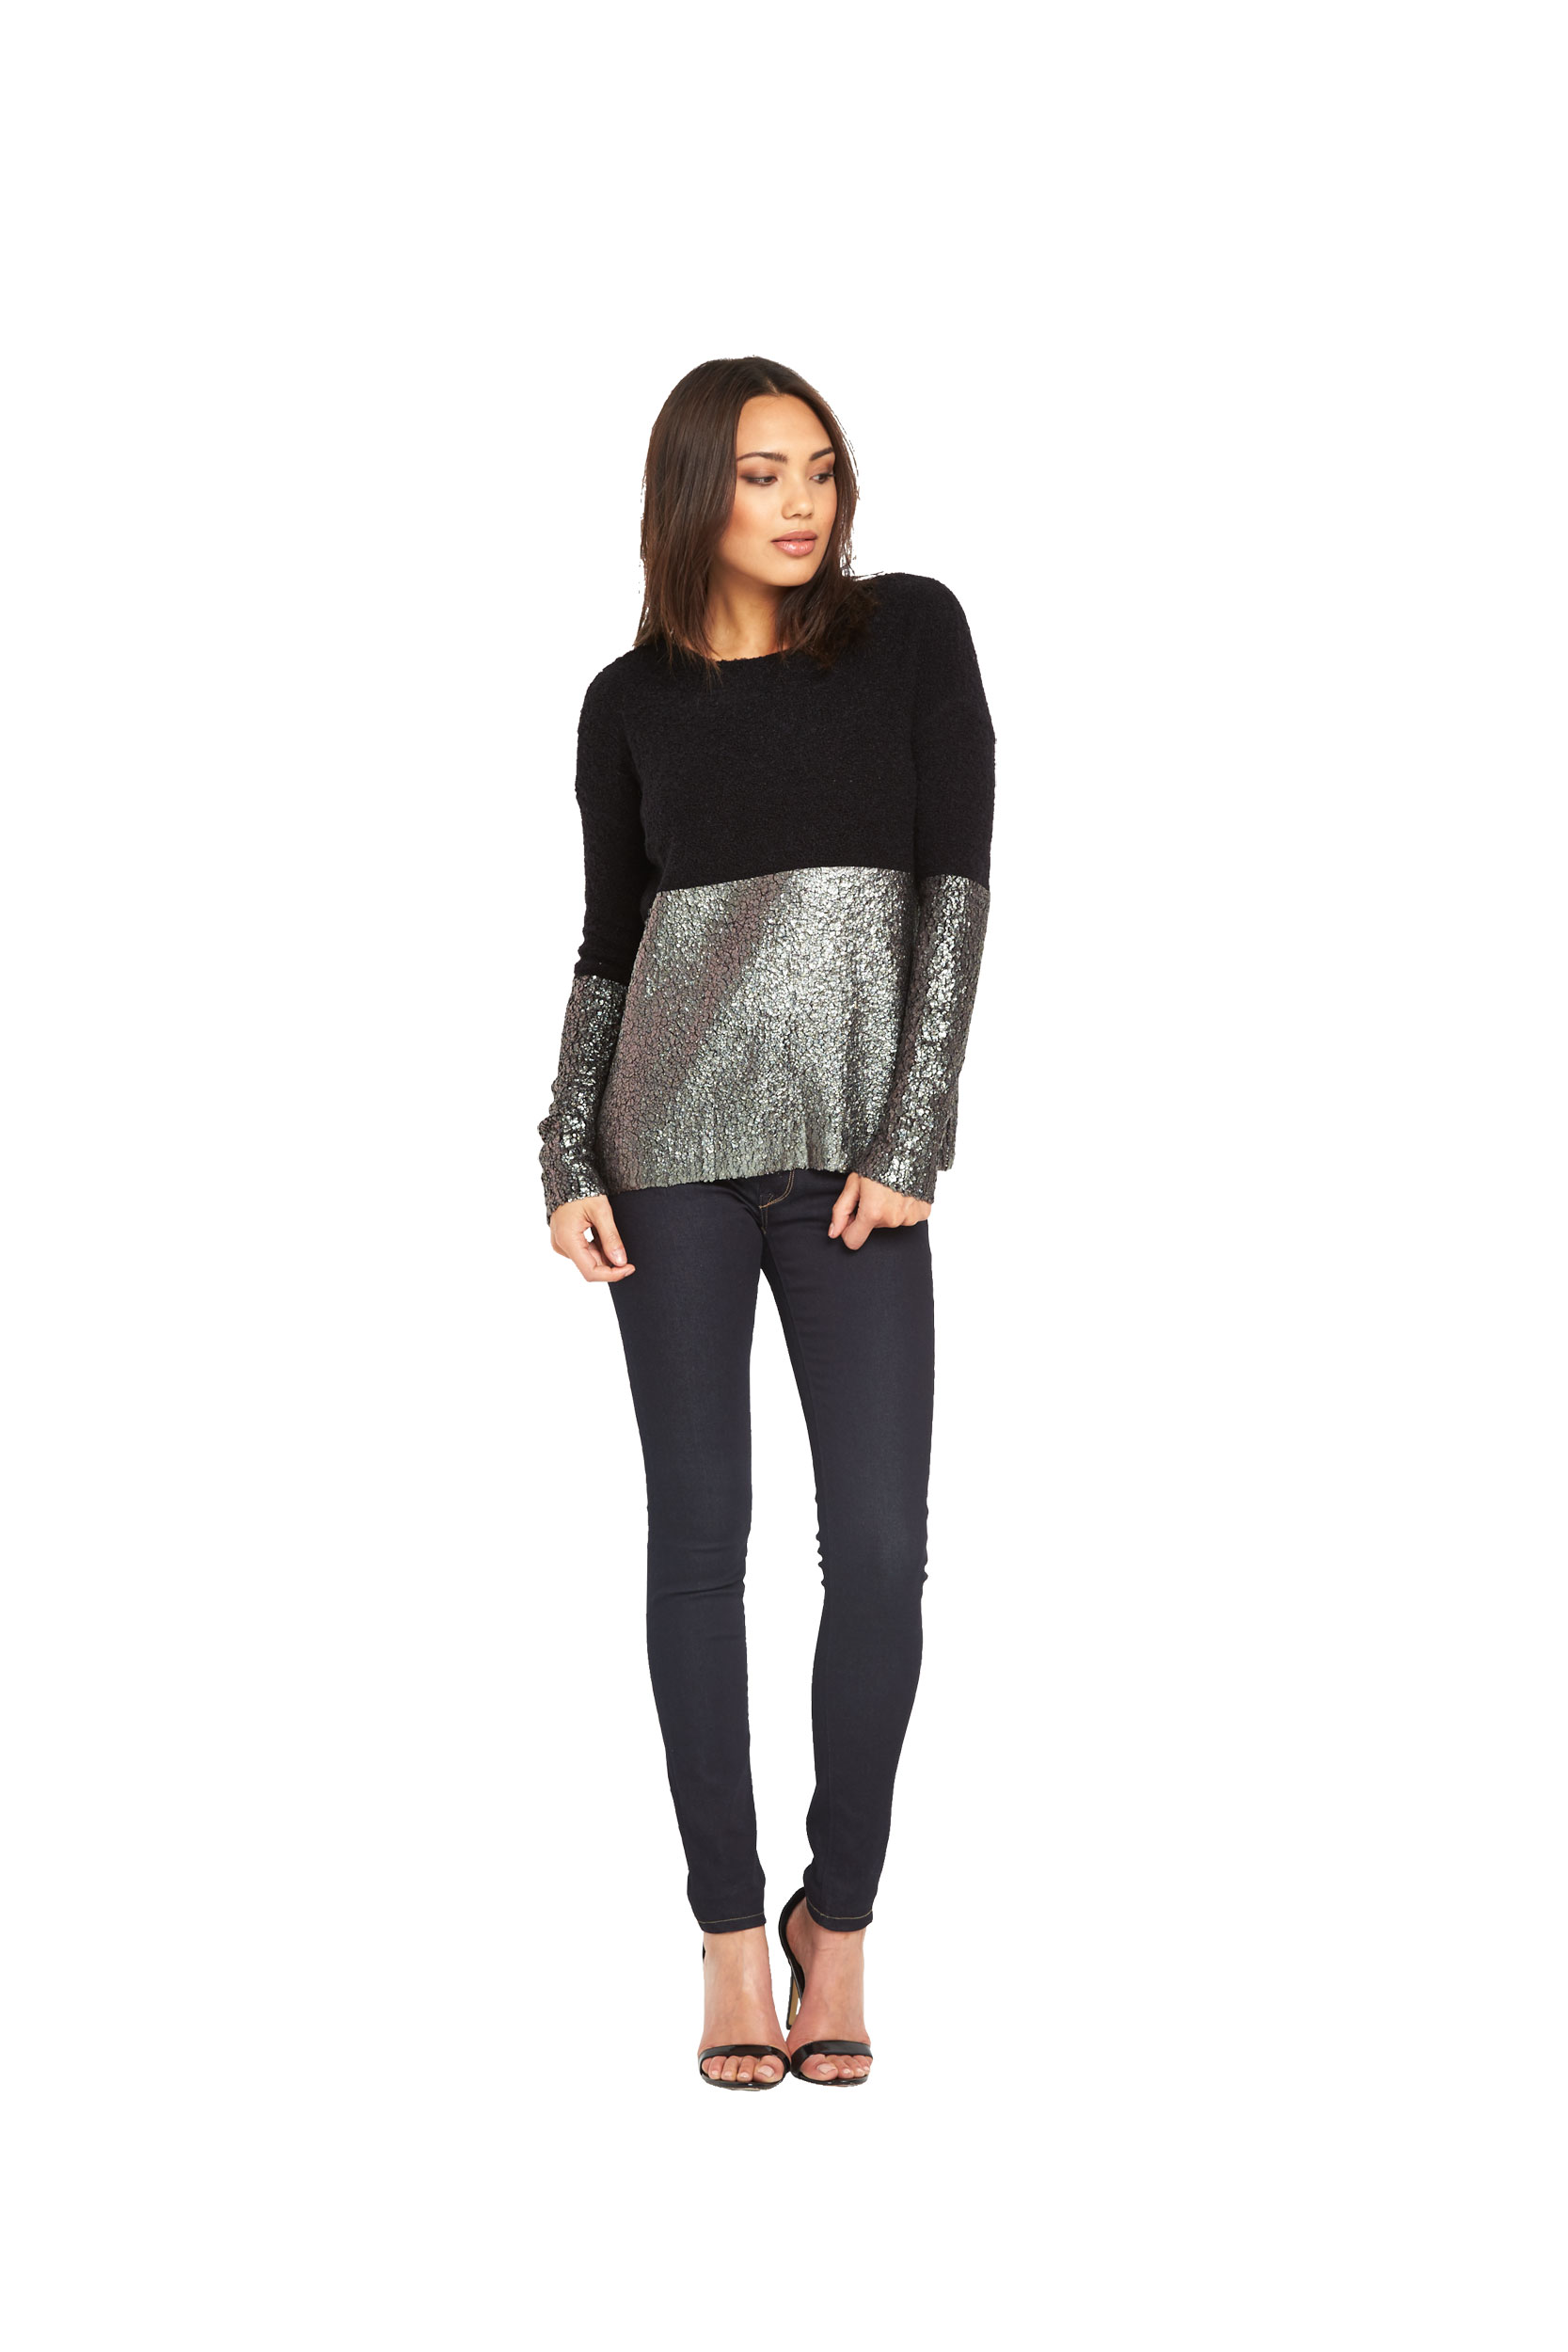 Replay Coated Gold Foil Shiny Knit Top